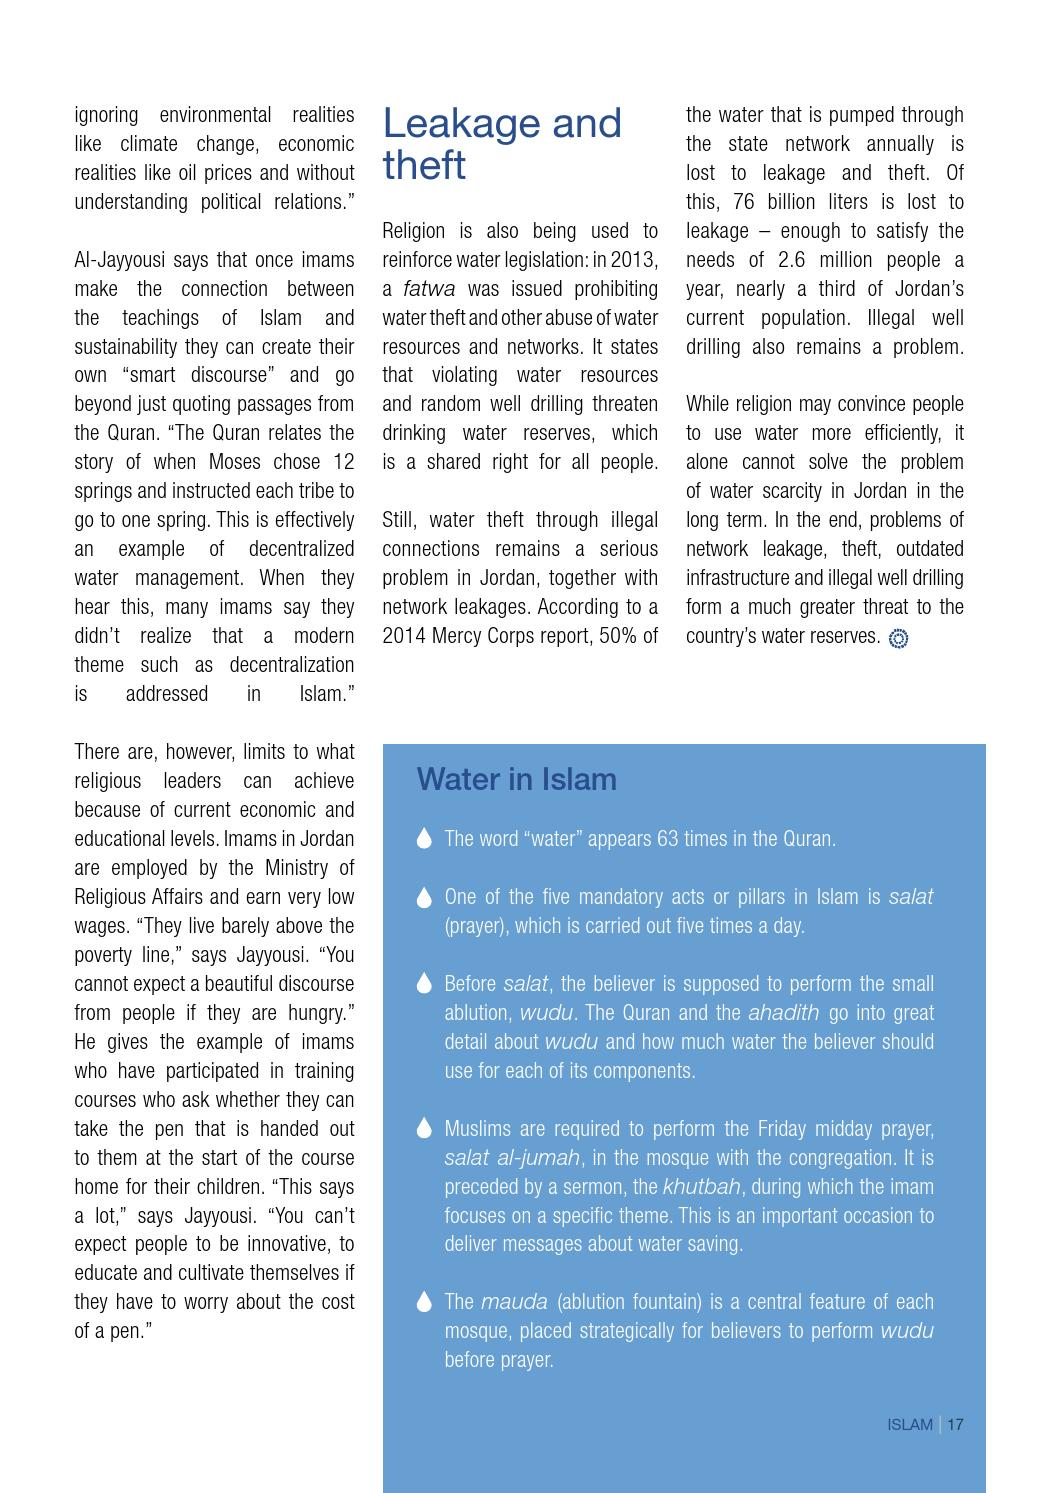 Water Scarcity in Jordan _ English version by REVOLVE - issuu